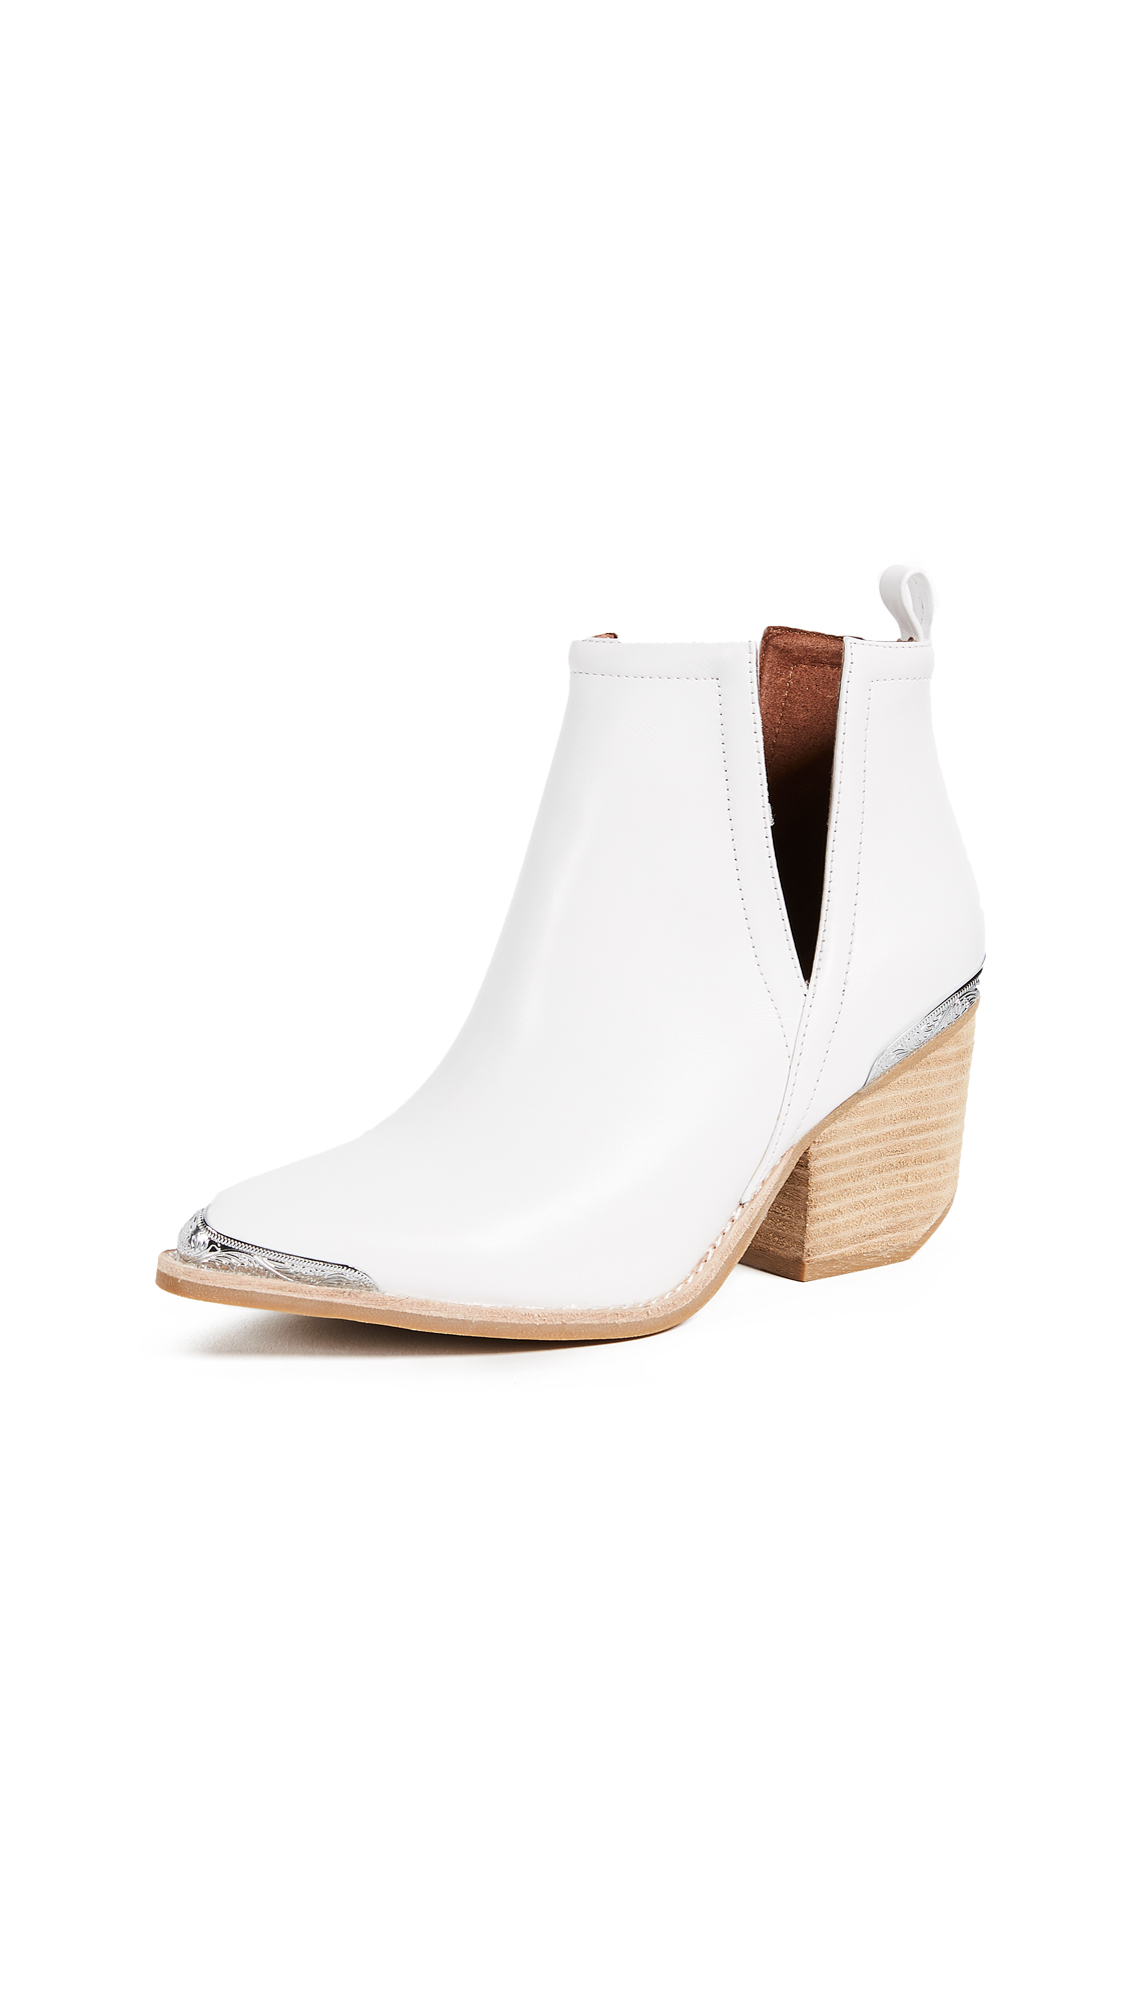 Jeffrey Campbell Cromwell Booties - White